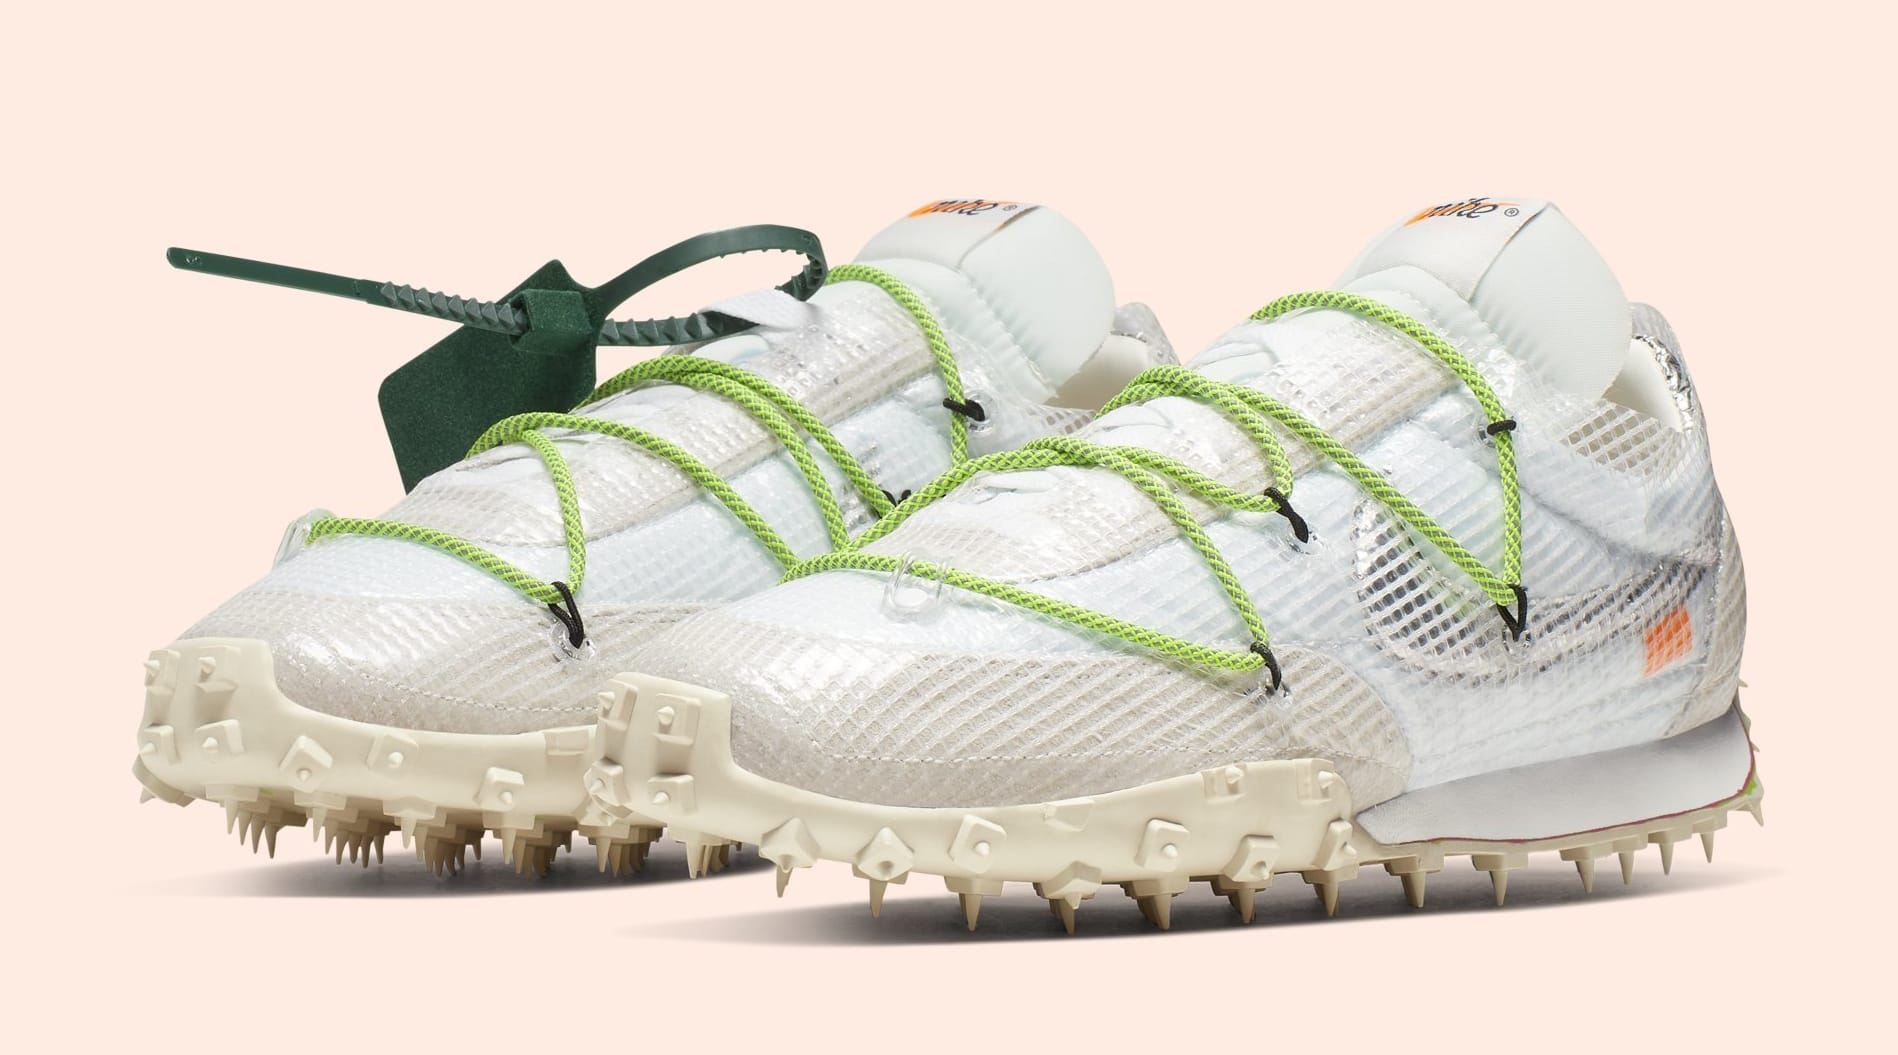 off-white-nike-waffle-racer-womens-electric-green-cd8180-100-pair